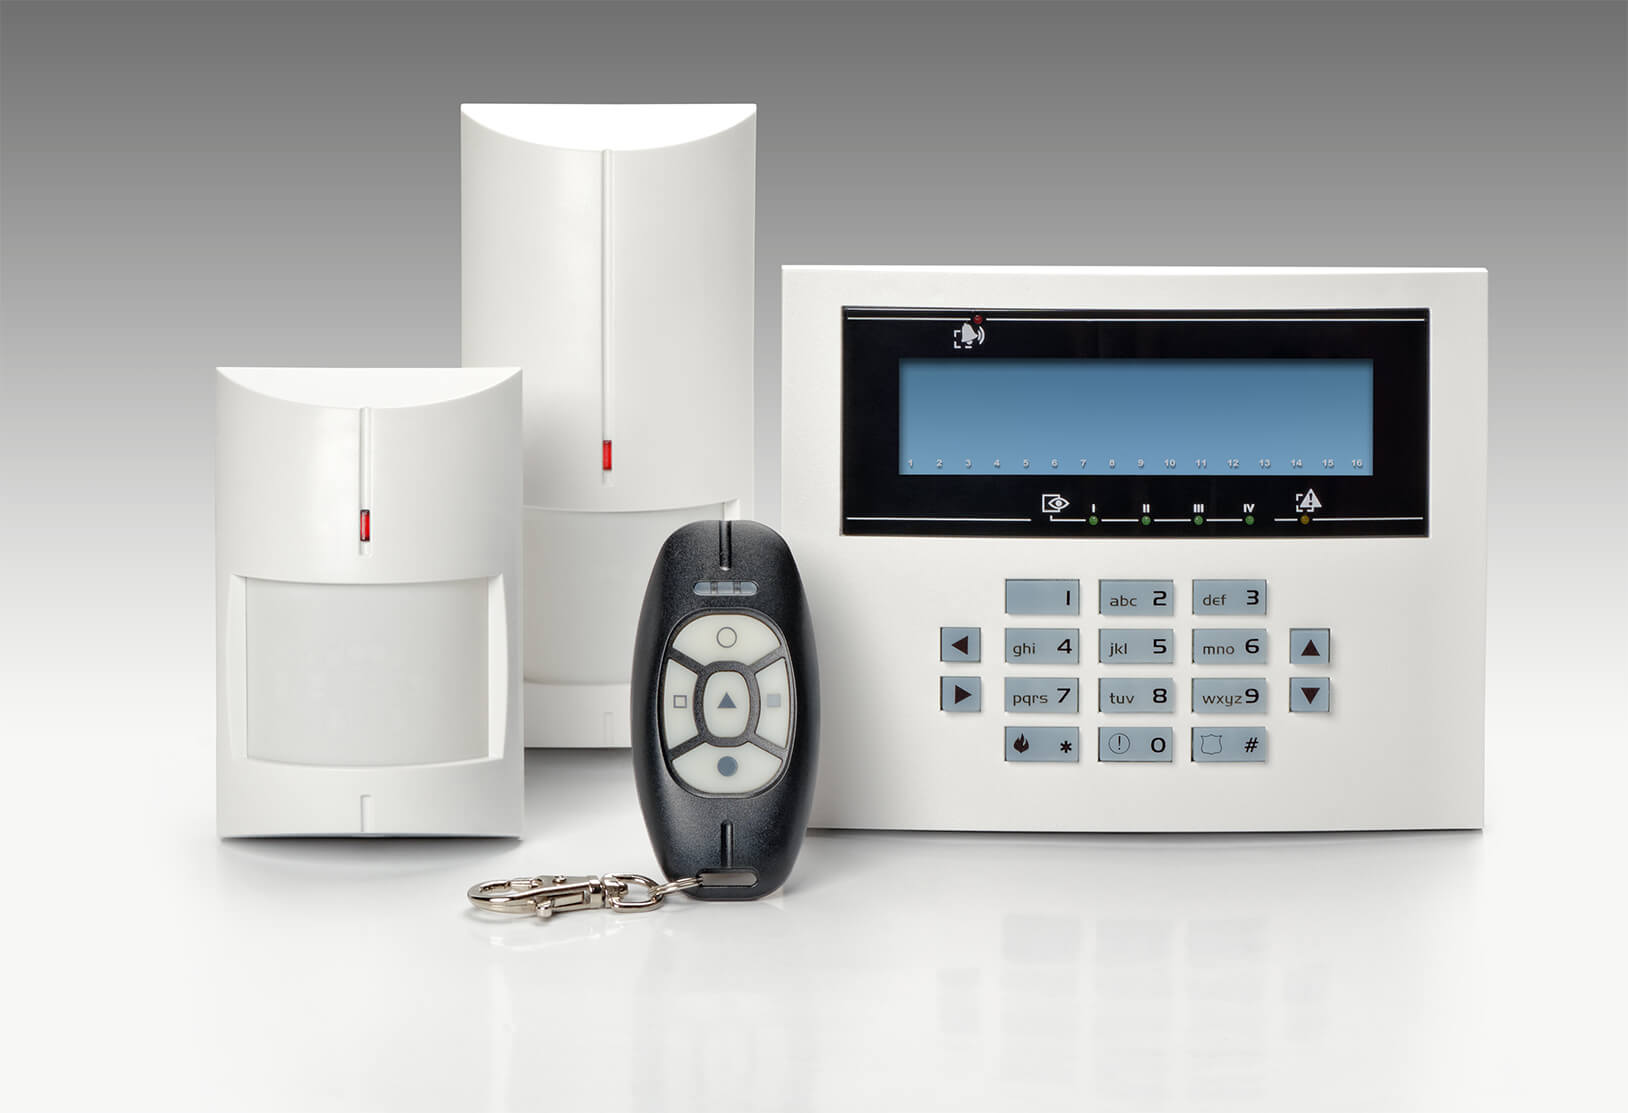 Commercial Burglar Alarms For Business in Lambeth SW2  - Local Lambeth SW2 burglar alarm company.Call 02078872244 - Dedicated to Safety & Security. Companies, shops and homes ..